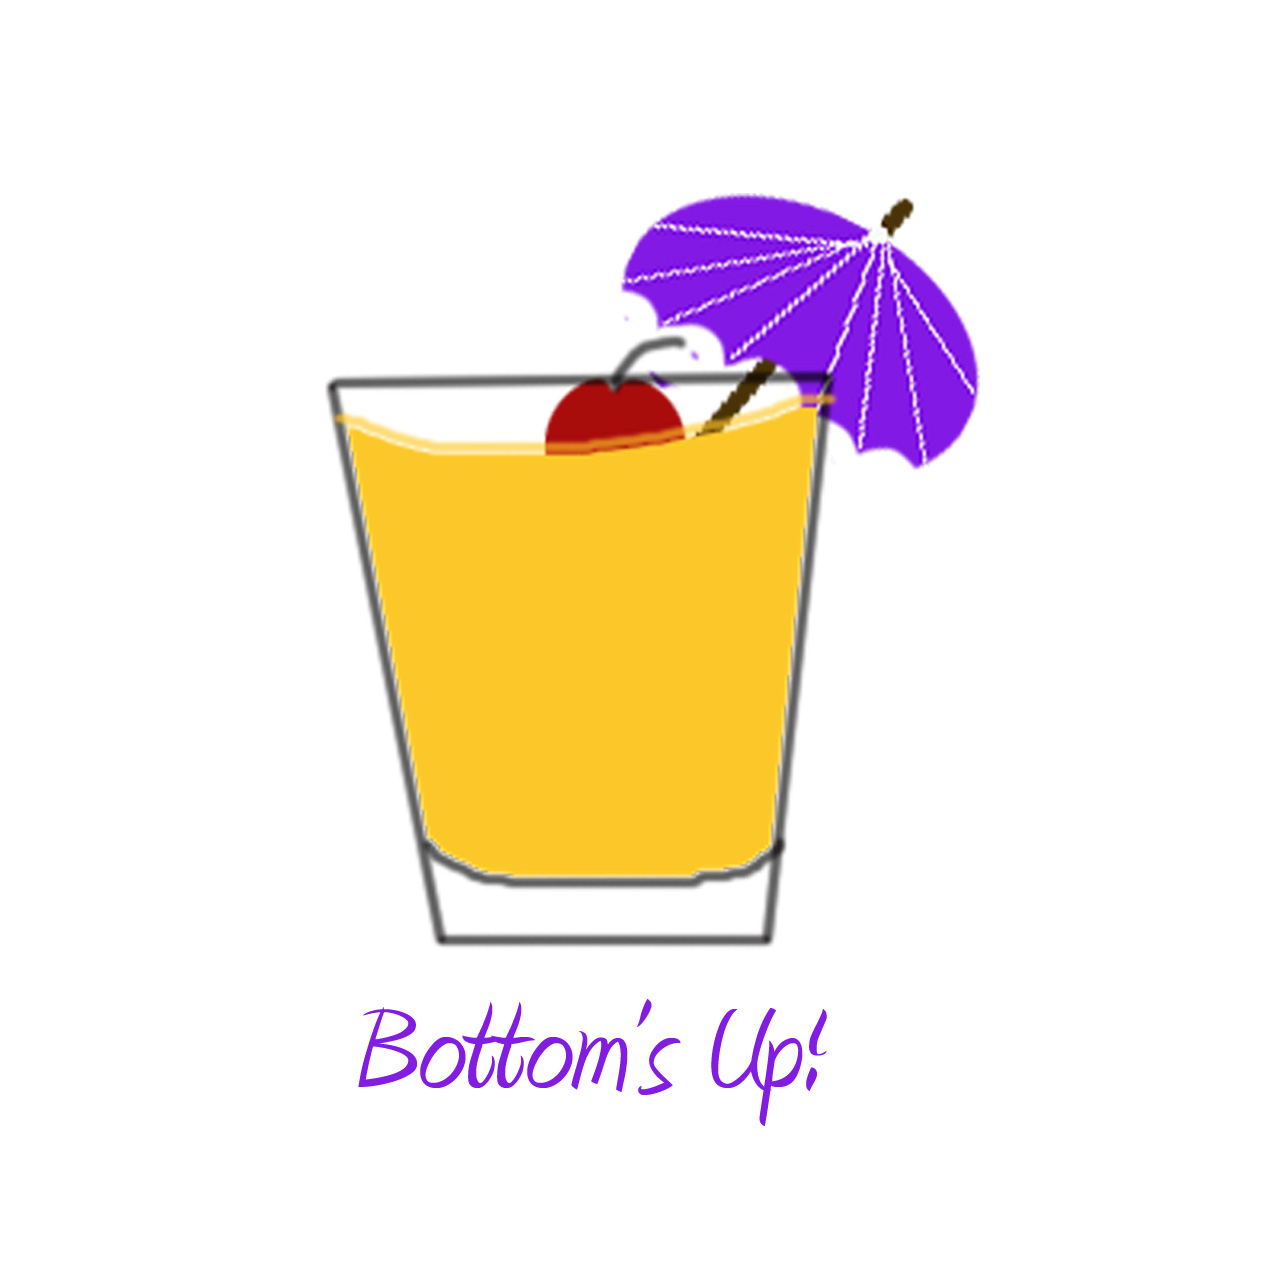 Low Ball cocktail coaster image